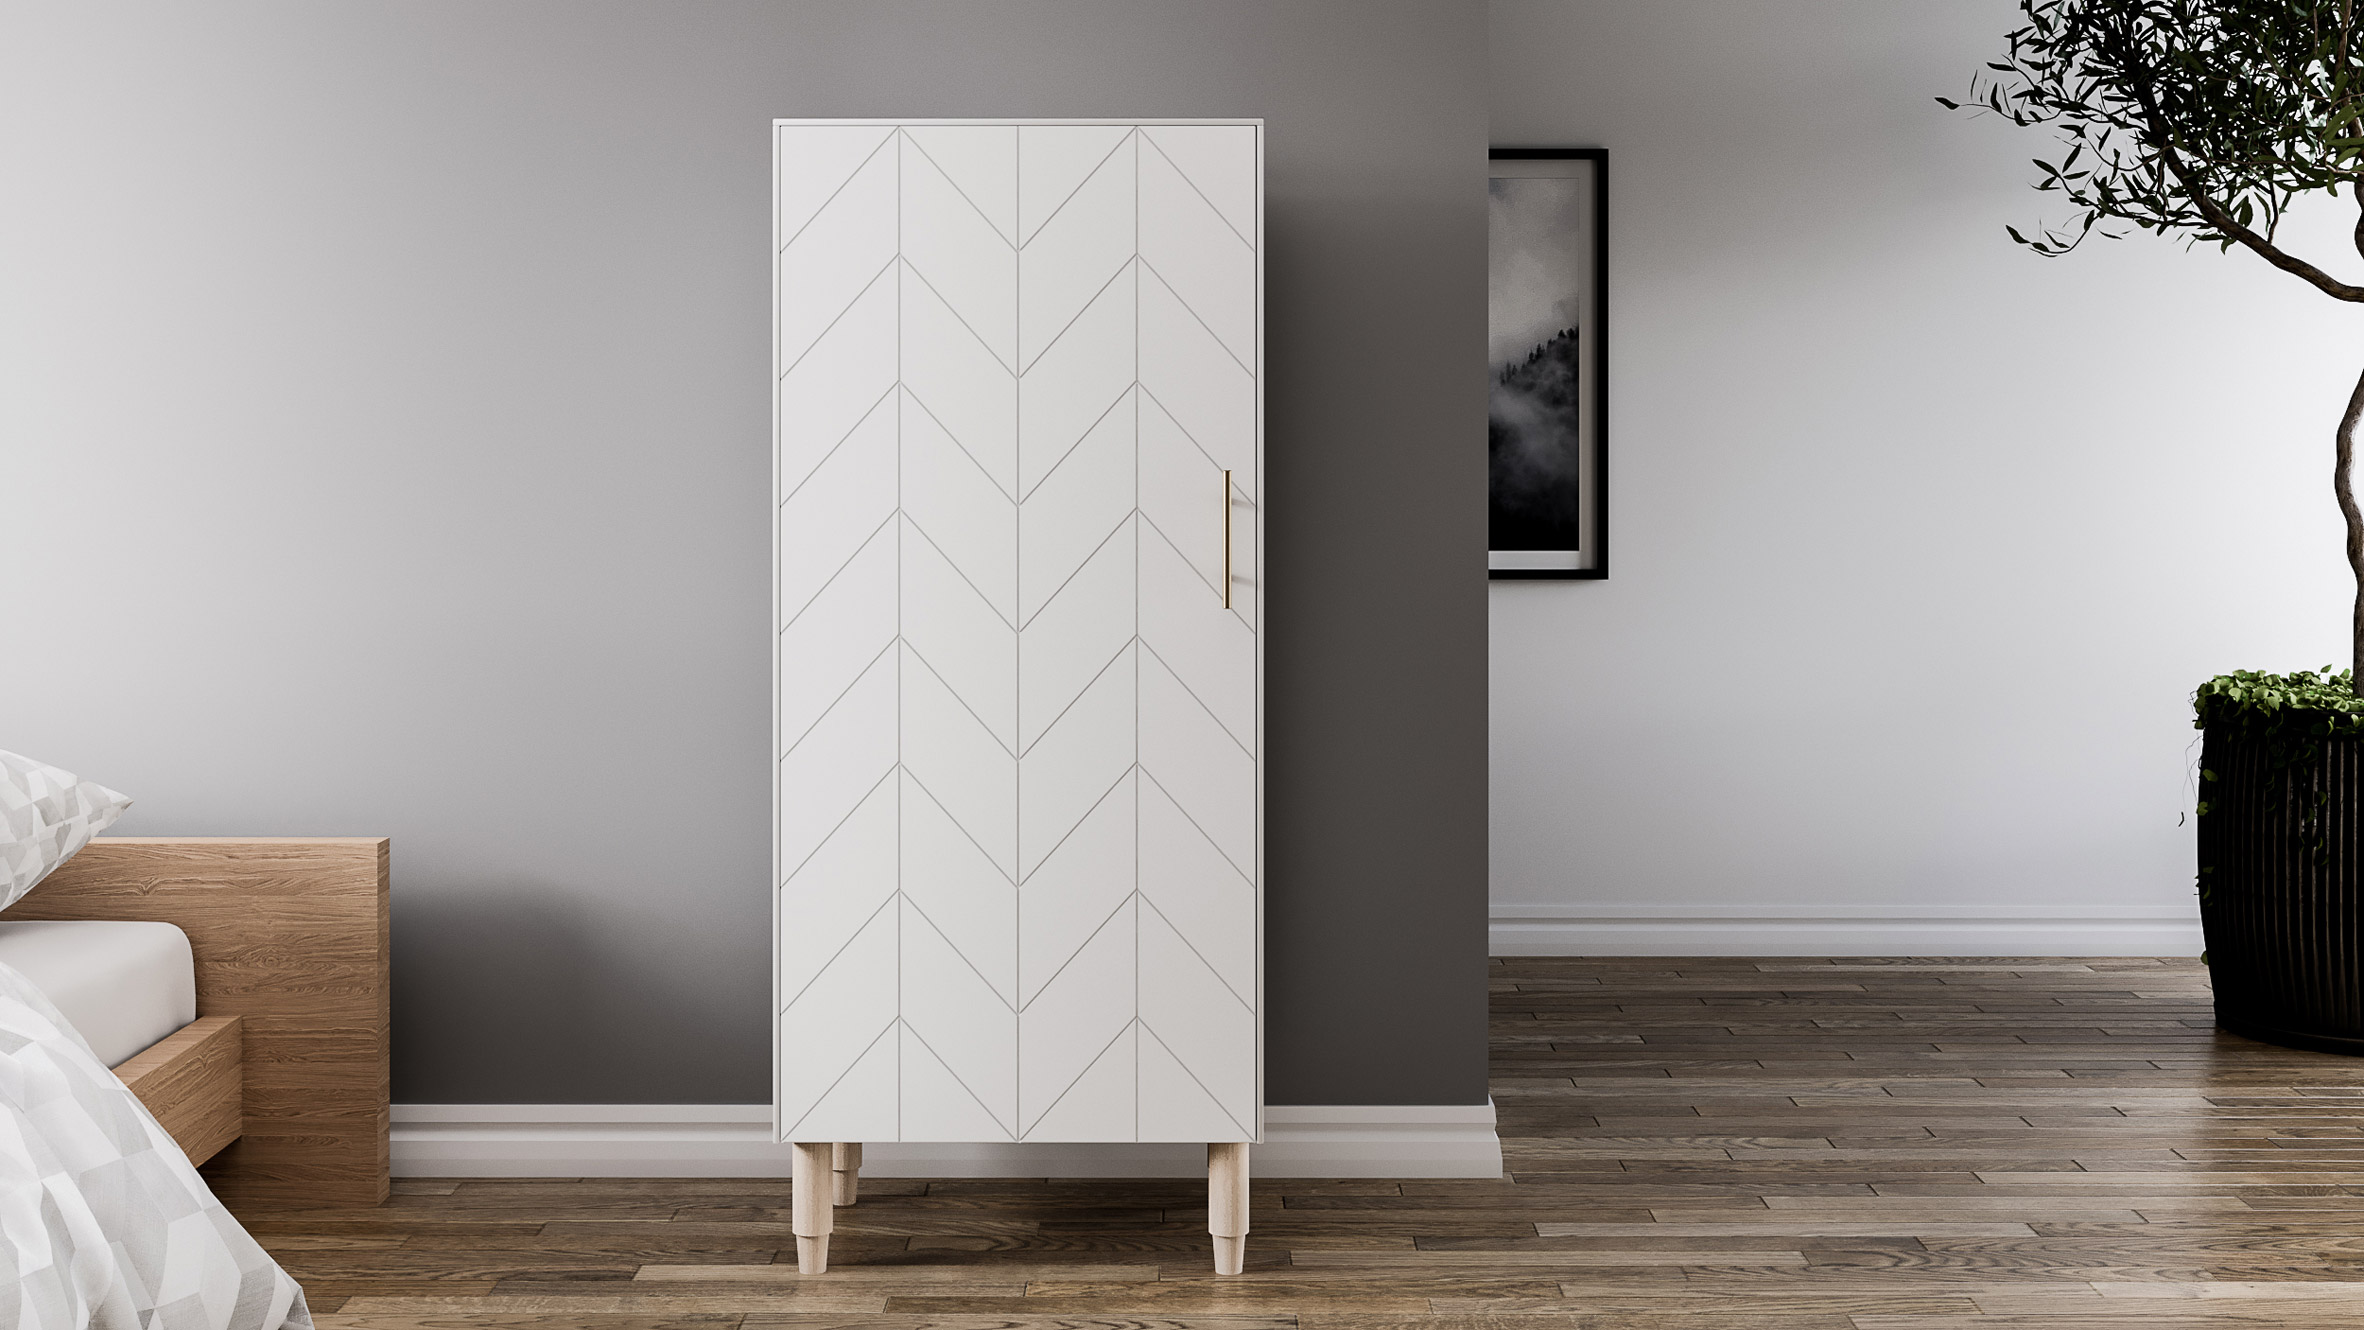 Norse's hacked IKEA cabinets are named after women's rights activists